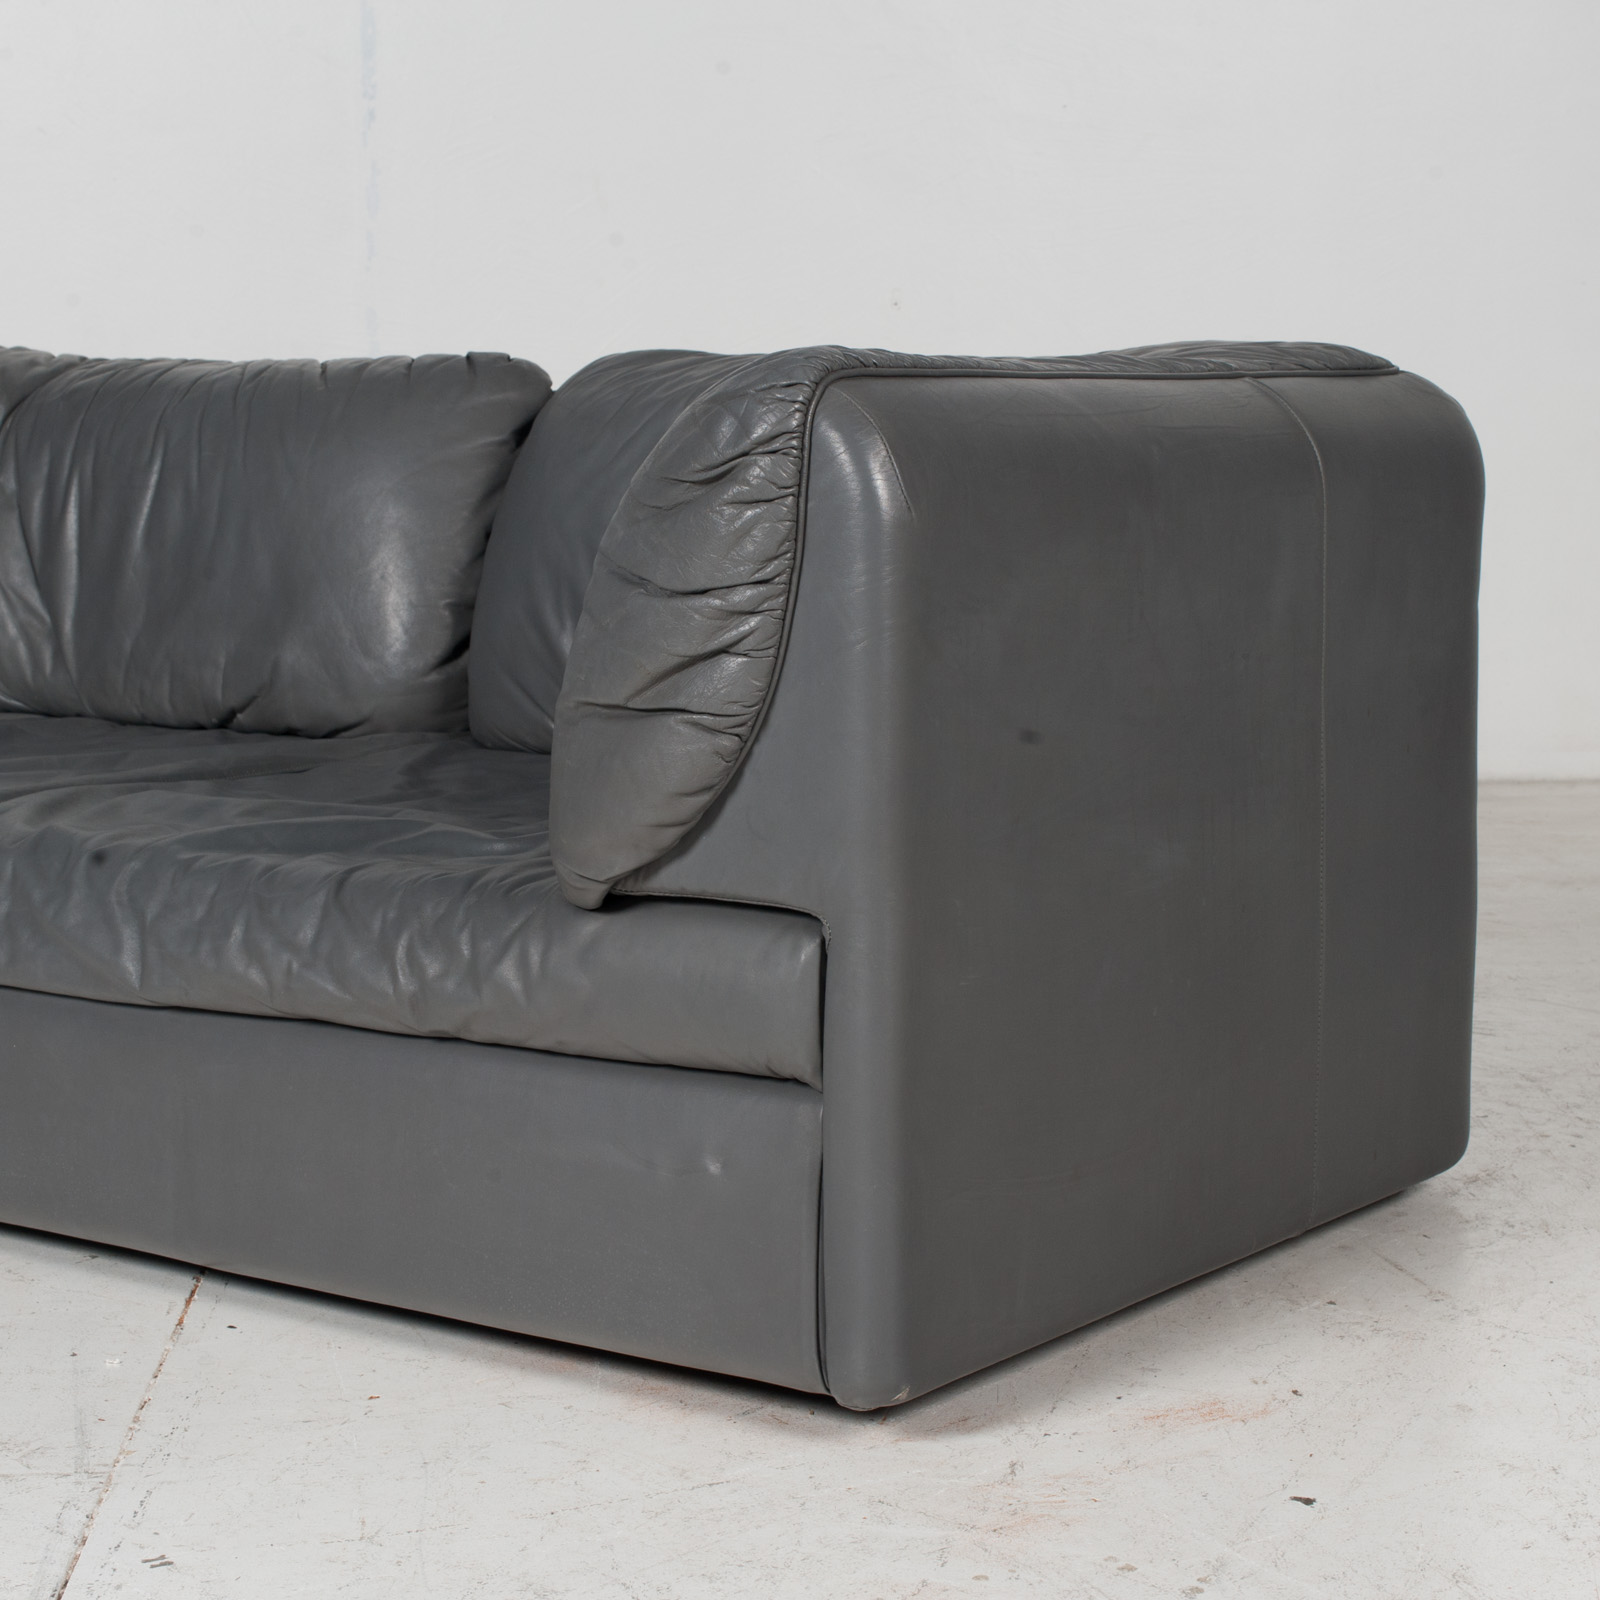 Model Pacific 2.5 Seat Sofa By Cini Boeri For Arflex In Grey Leather, 1980s, Italy 6